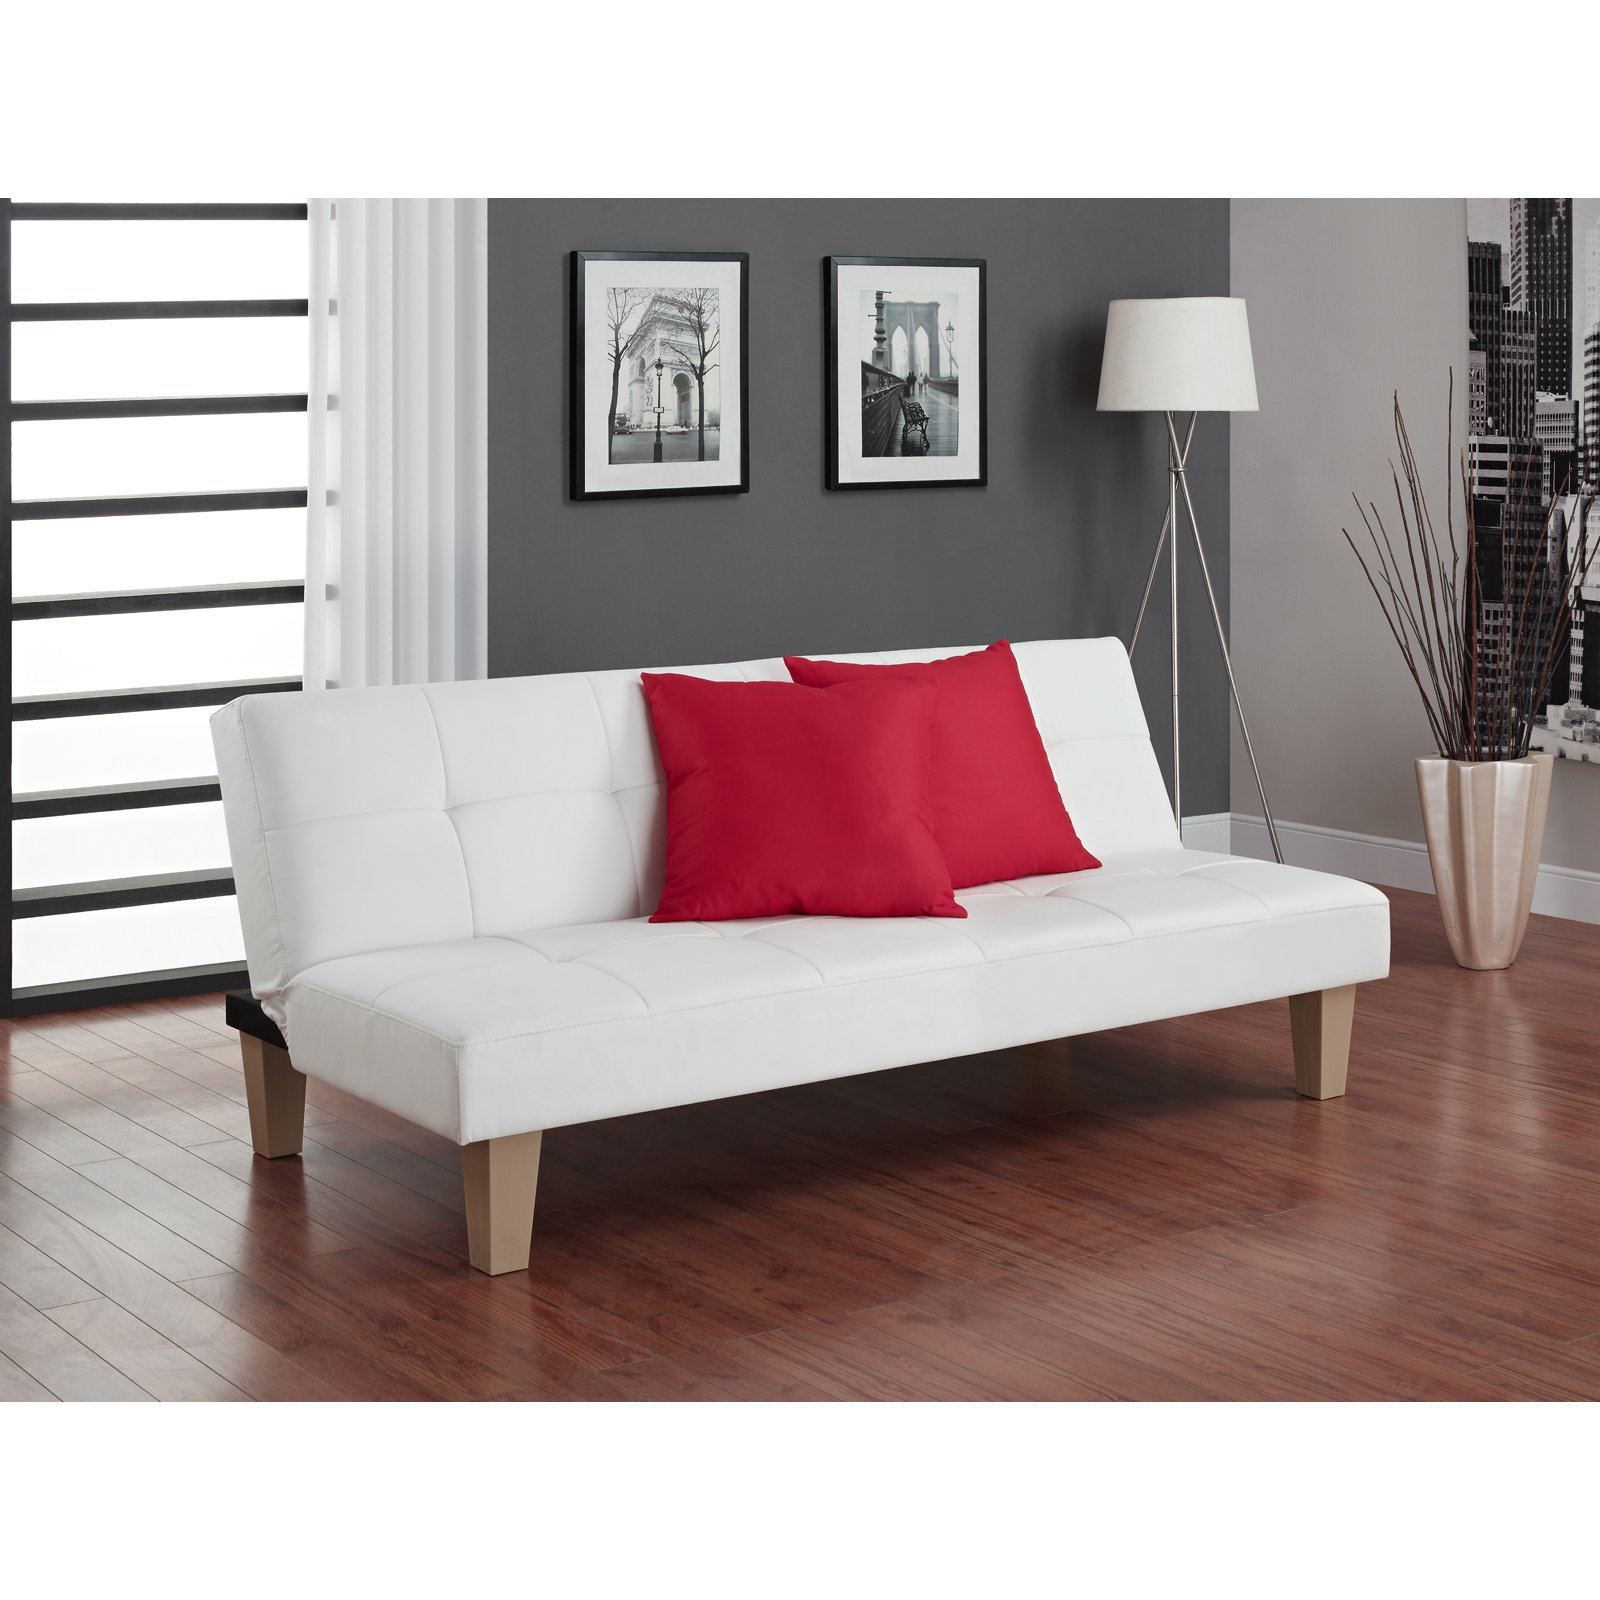 Dhp Aria Futon Sofa Bed White Faux Leather Upholstery Walmart Com